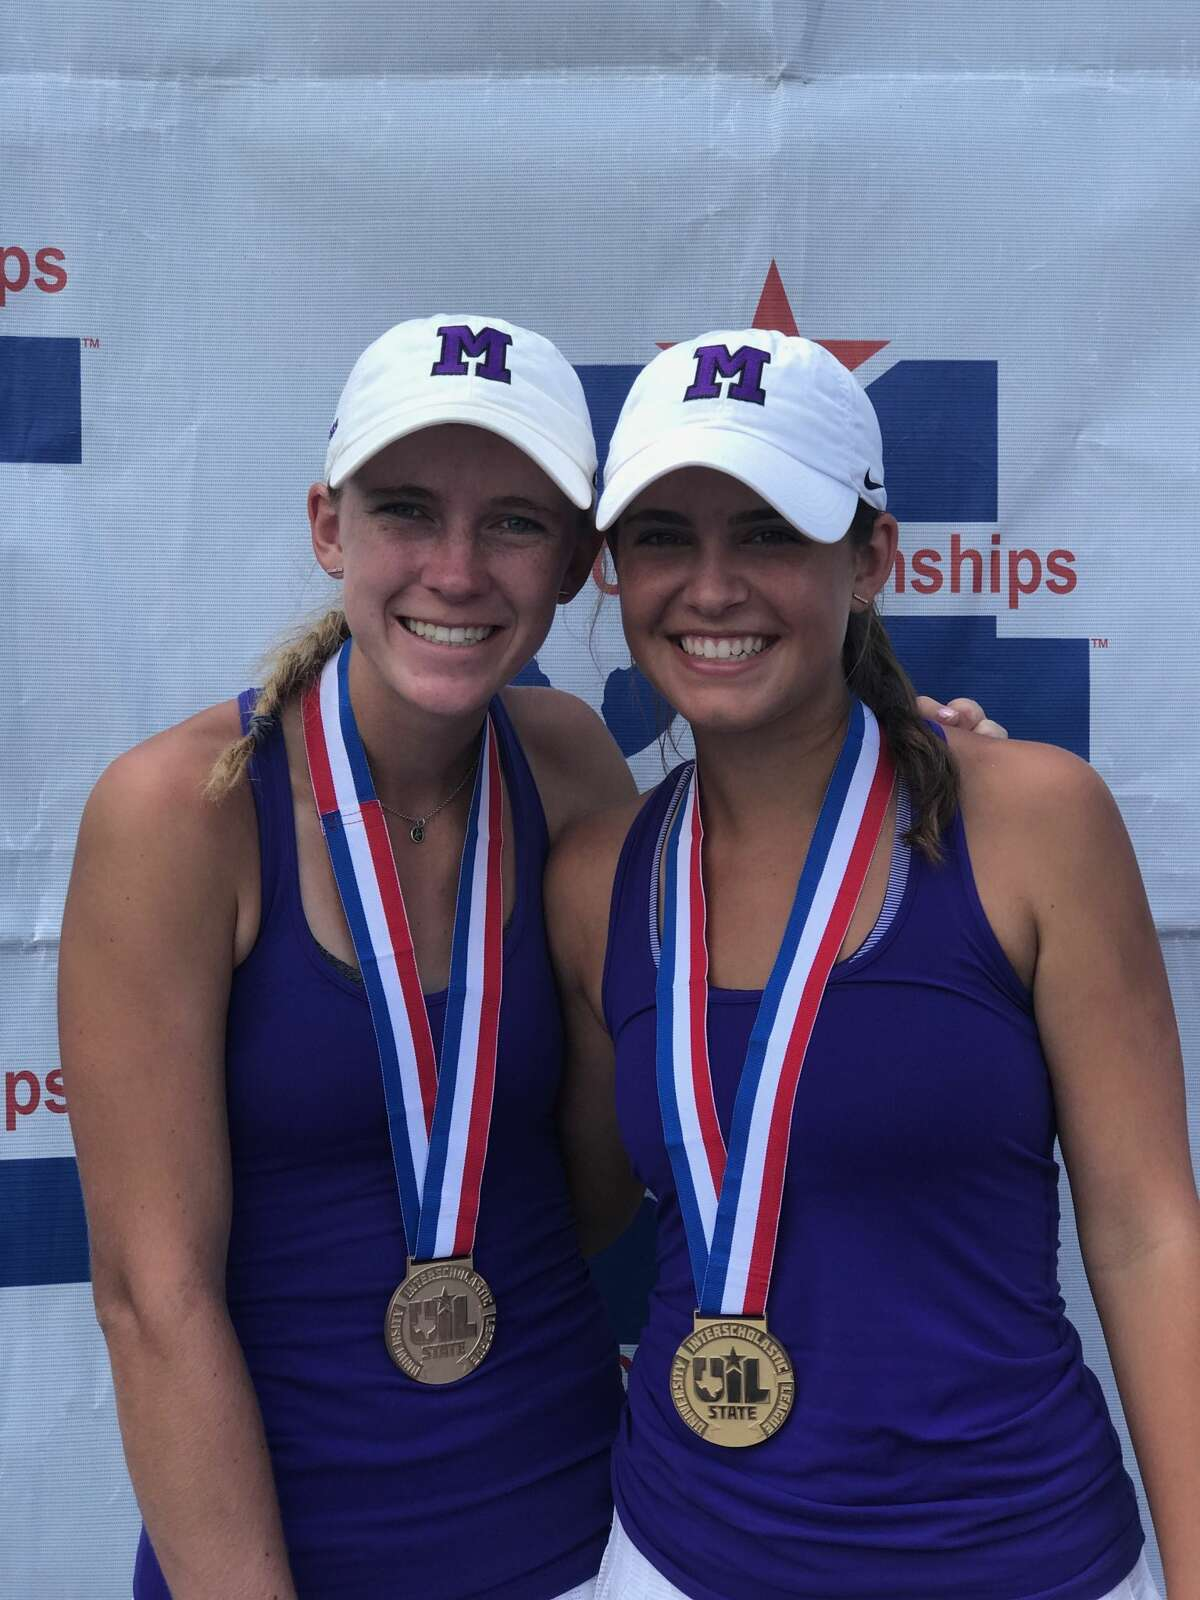 3. MHS' STEWART-DAUGHERTY GO 45-0, WIN STATE DOUBLES TITLE Midland High senior Kate Daugherty and junior Allison Stewart capped the 2016-17 season with an unblemished 45-0 record, while becoming the first MHS girls doubles team to win state since Terre Cowden and Susan Stolz in 1972.